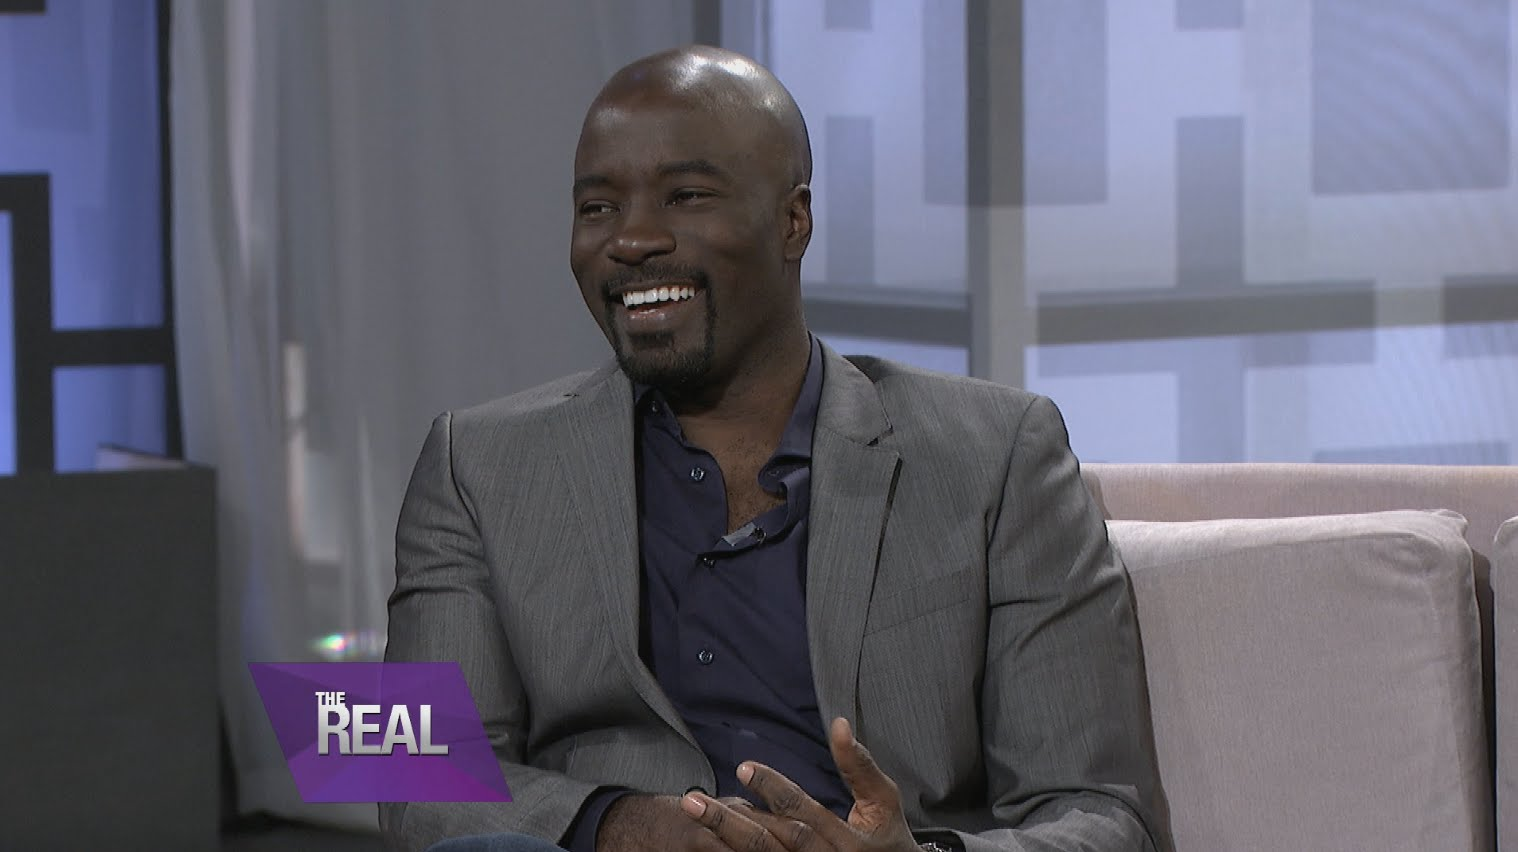 1518x852 - Mike Colter Wallpapers 9